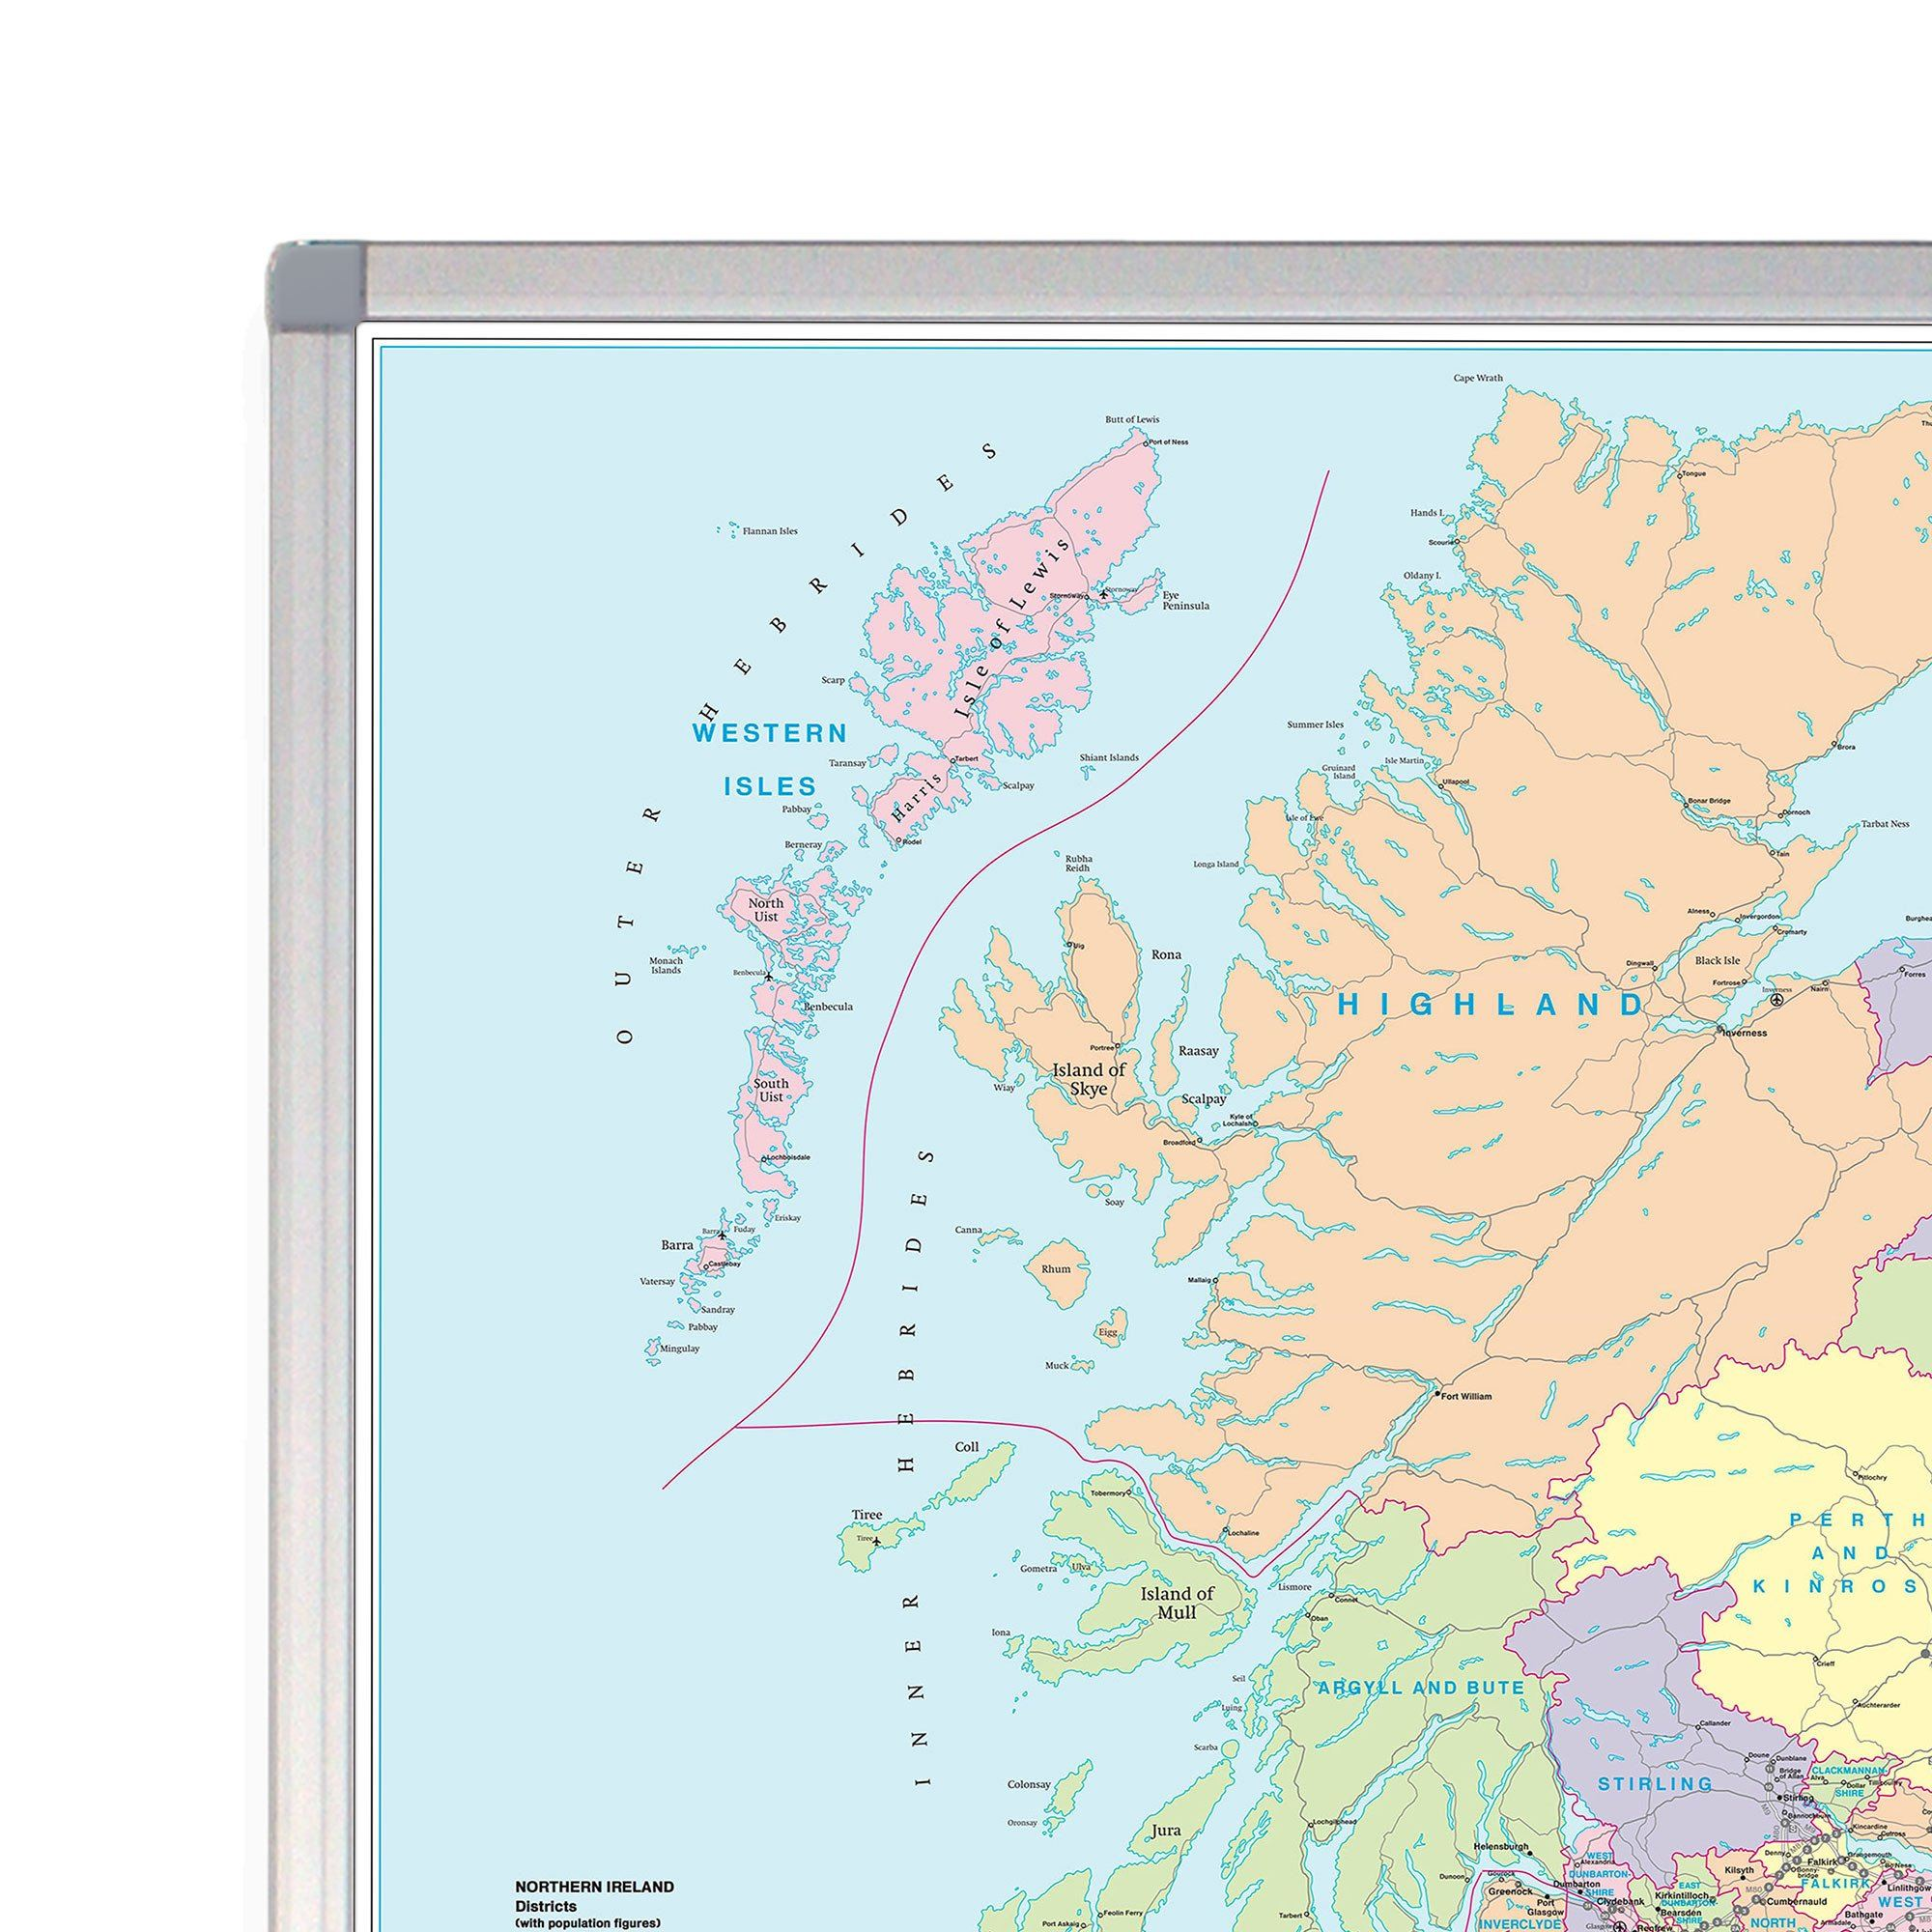 Scotland Road Map - Laminated Wall Map of Scotland on map of english channel, republic of ireland, edinburgh castle, map of united kingdom, northern ireland, map of ireland, map of philippines, isle of man, united states of america, william wallace, scottish highlands, map of european countries, map of british isles, map of jersey, united kingdom, map of shetland islands, loch ness, map of stonehenge, map of united states, map of world, map of uk, map of denmark, map of manchester, map of the low countries, map of austria, map of wales, map of rhine river, map of jordan, flag of scotland, map of alberta, great britain, scottish people,